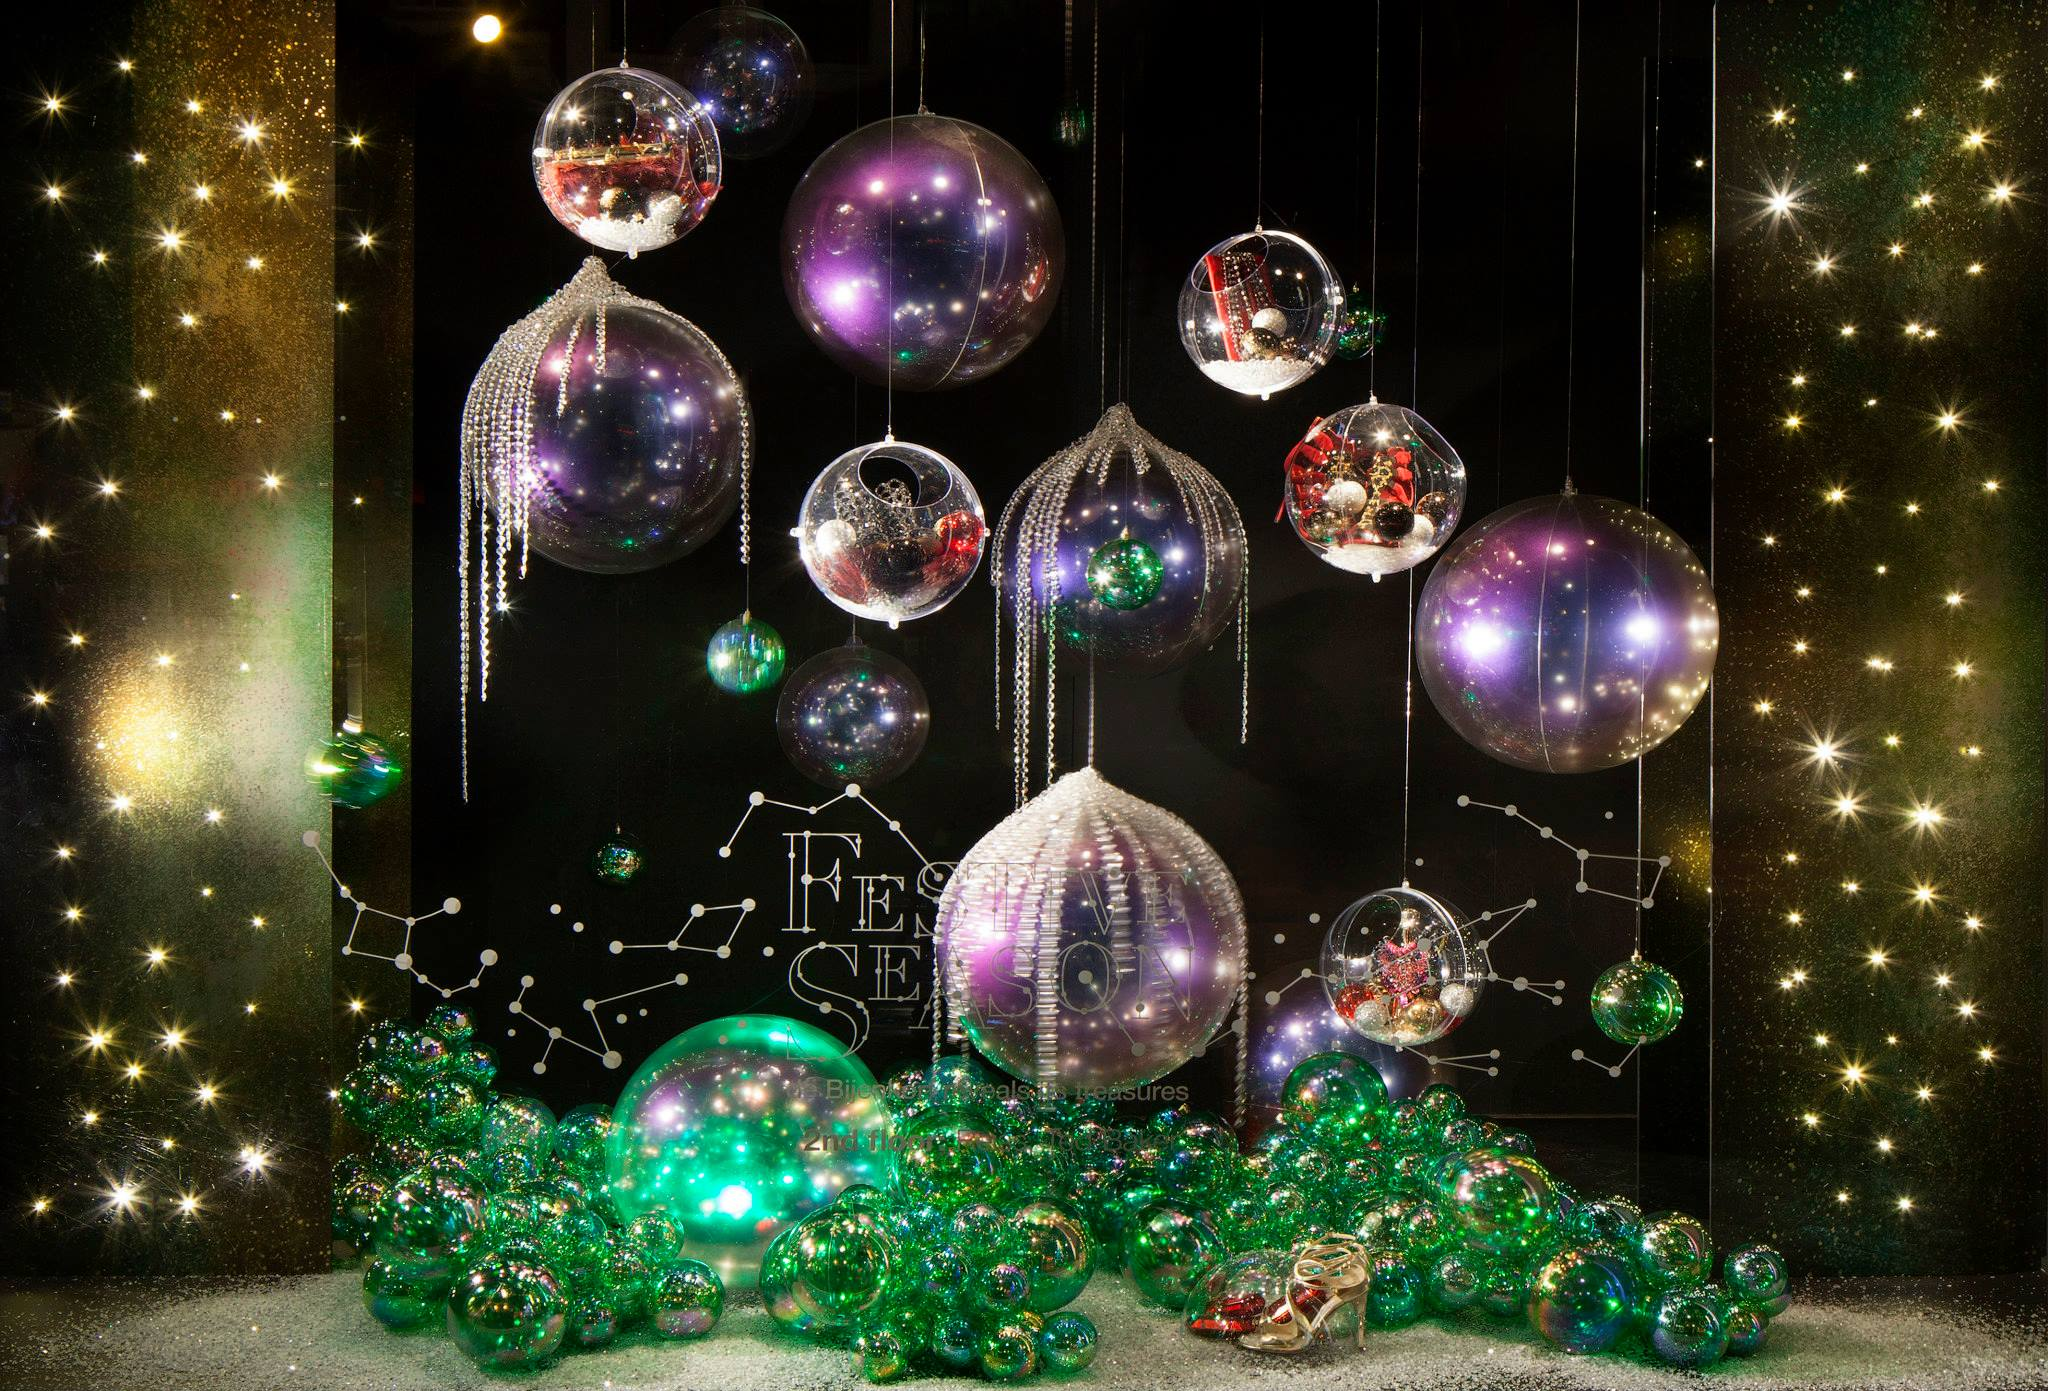 All together in this window display, big and small spheres colored in green and purple, designed for Christmas, the most festive time of the year.